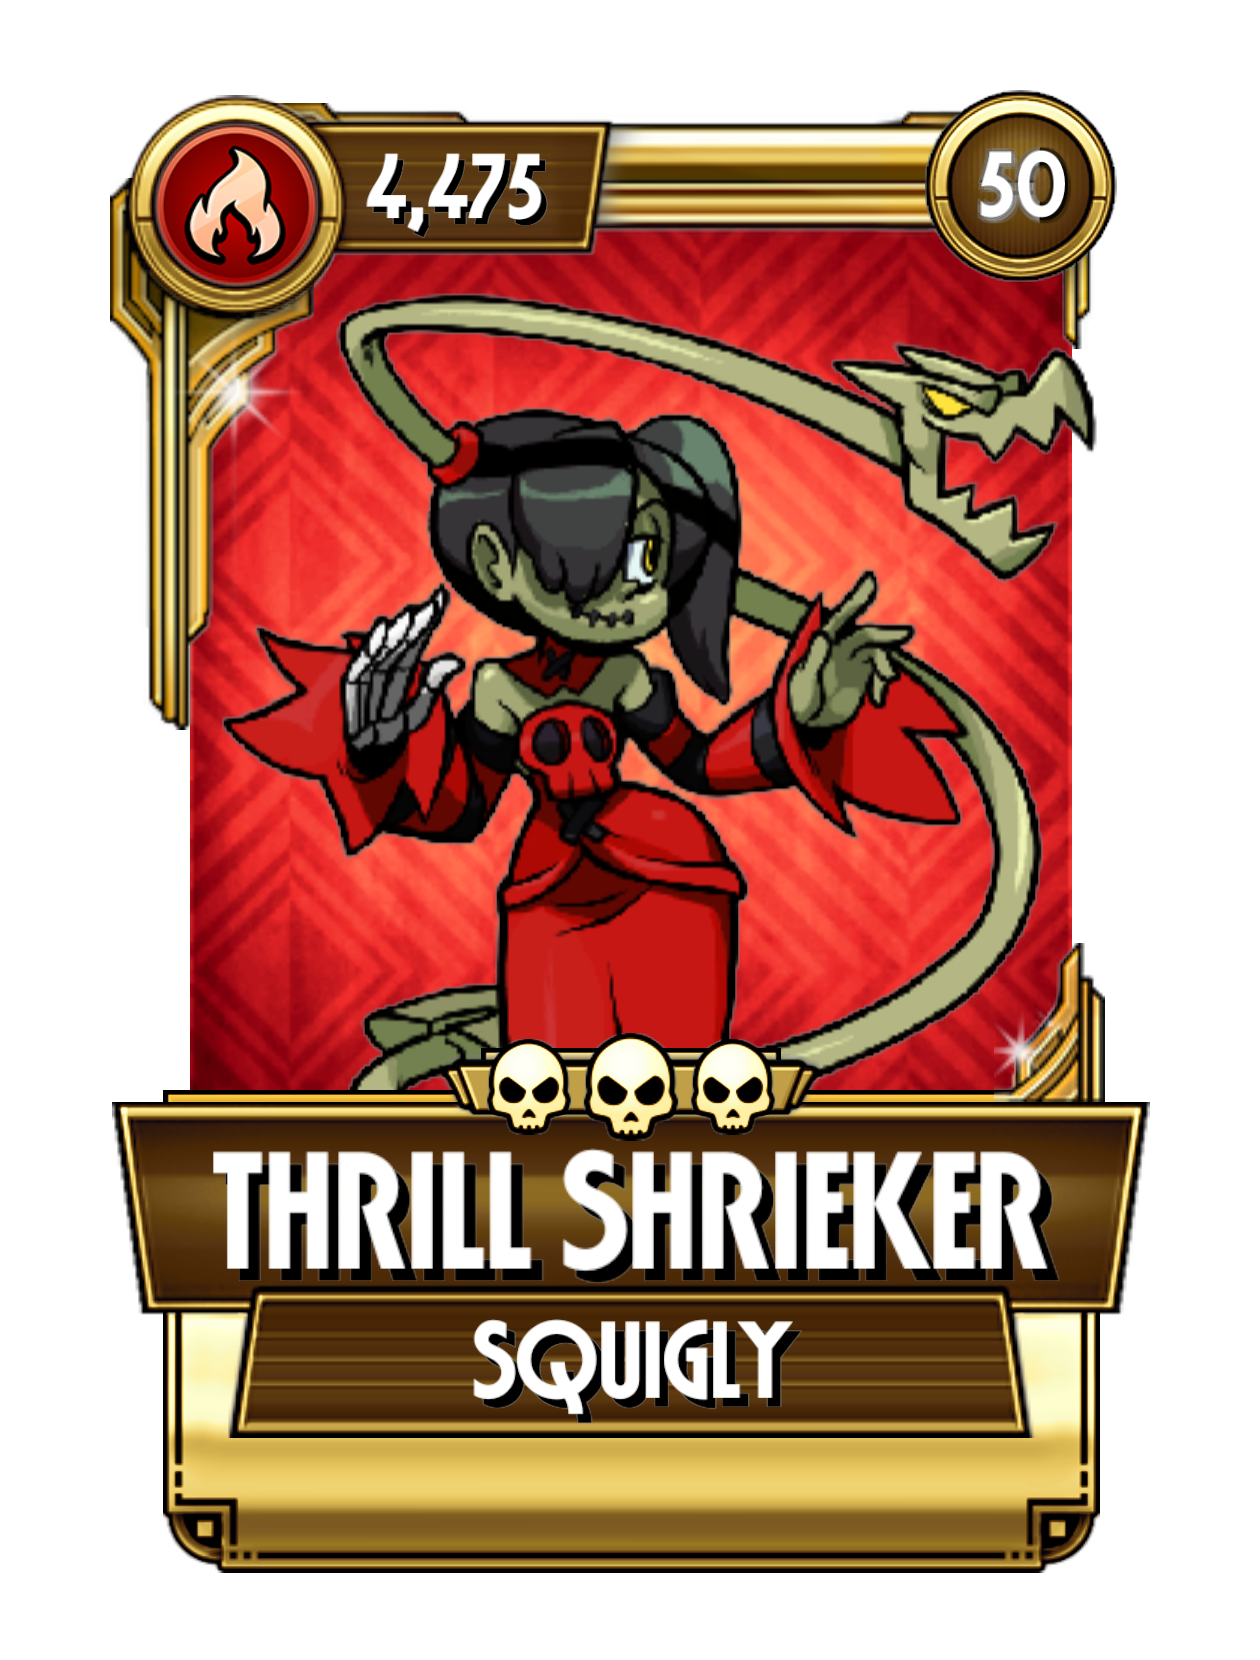 Thrill Shrieker